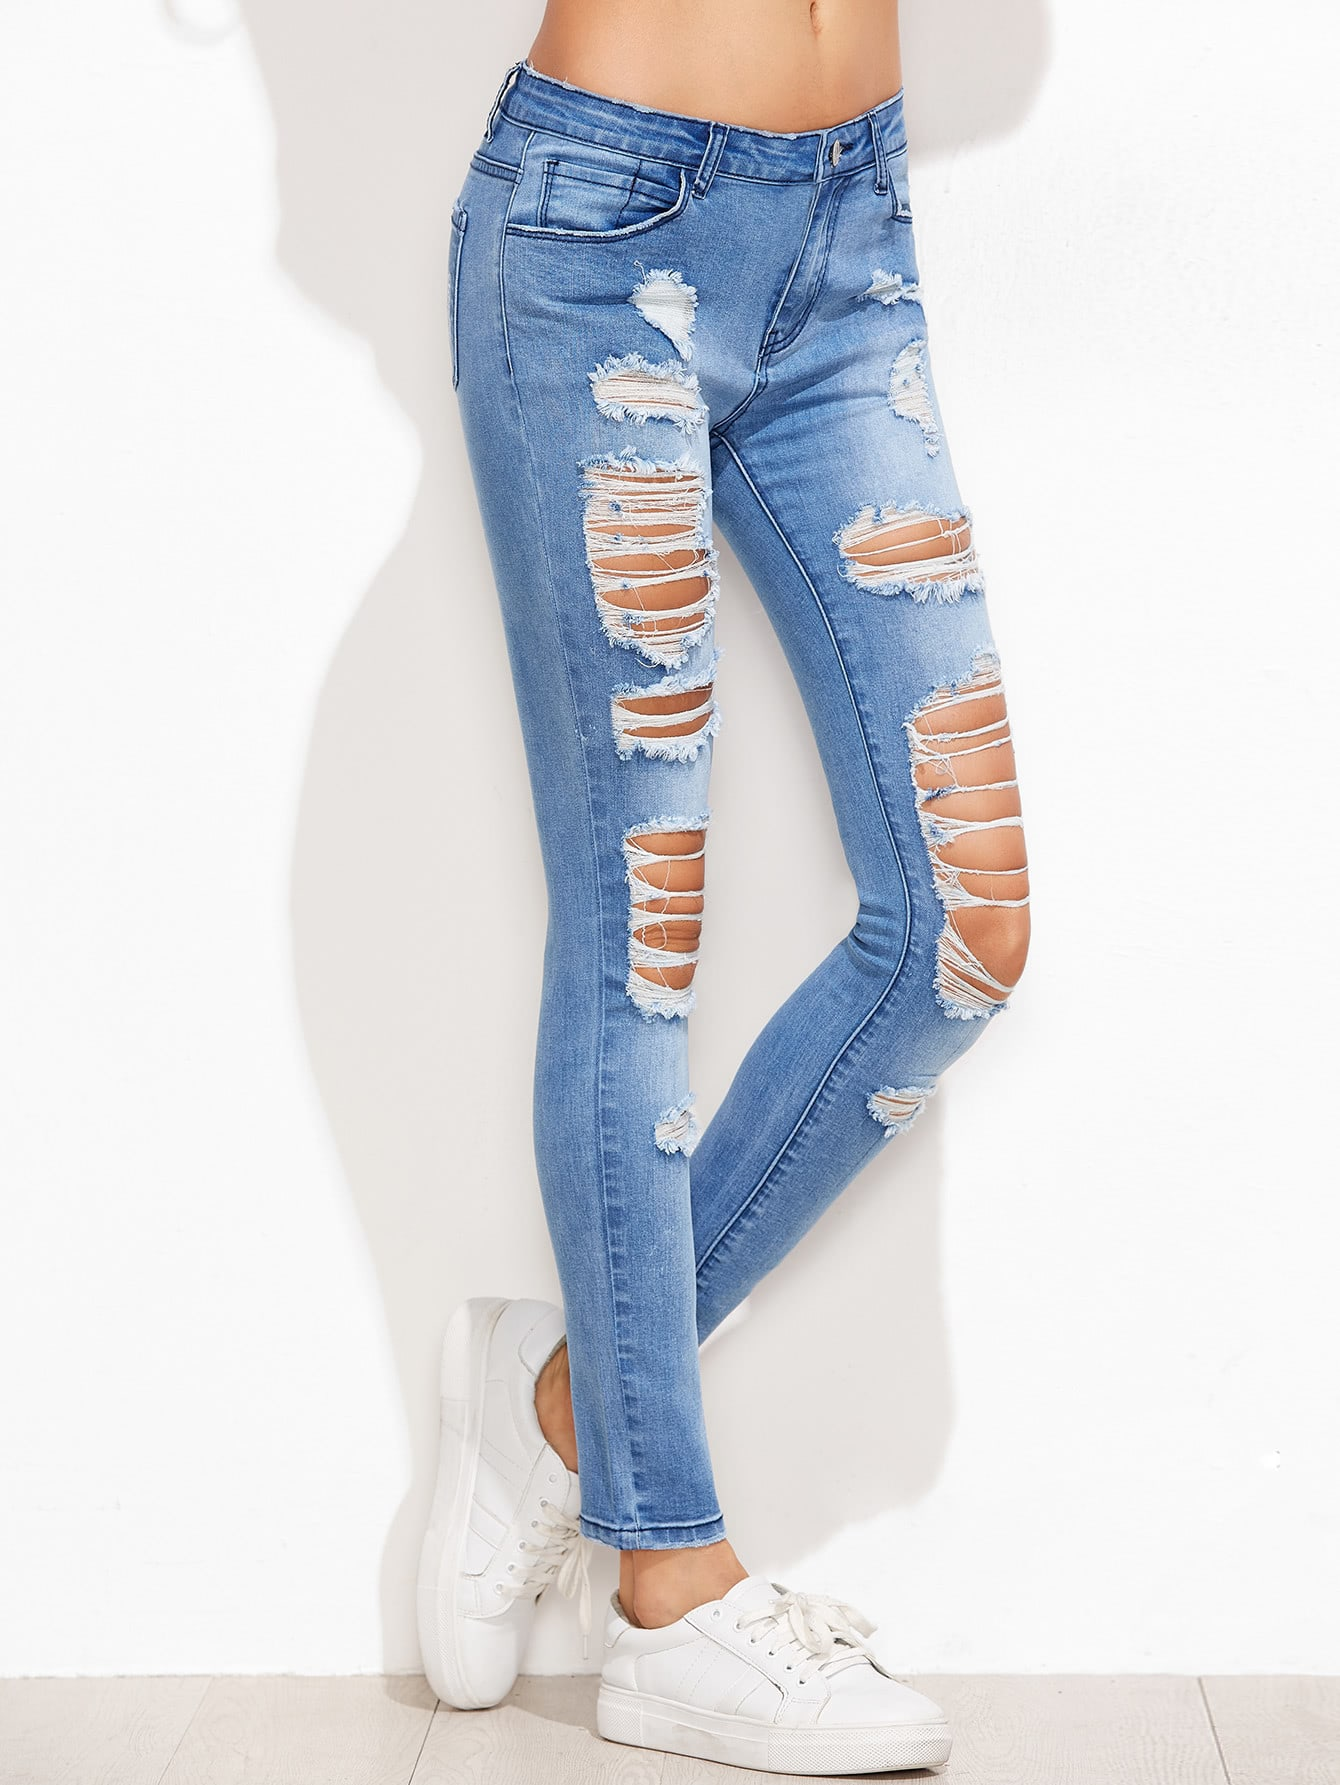 Bleached Distressed Skinny Jeans embroidered distressed skinny jeans